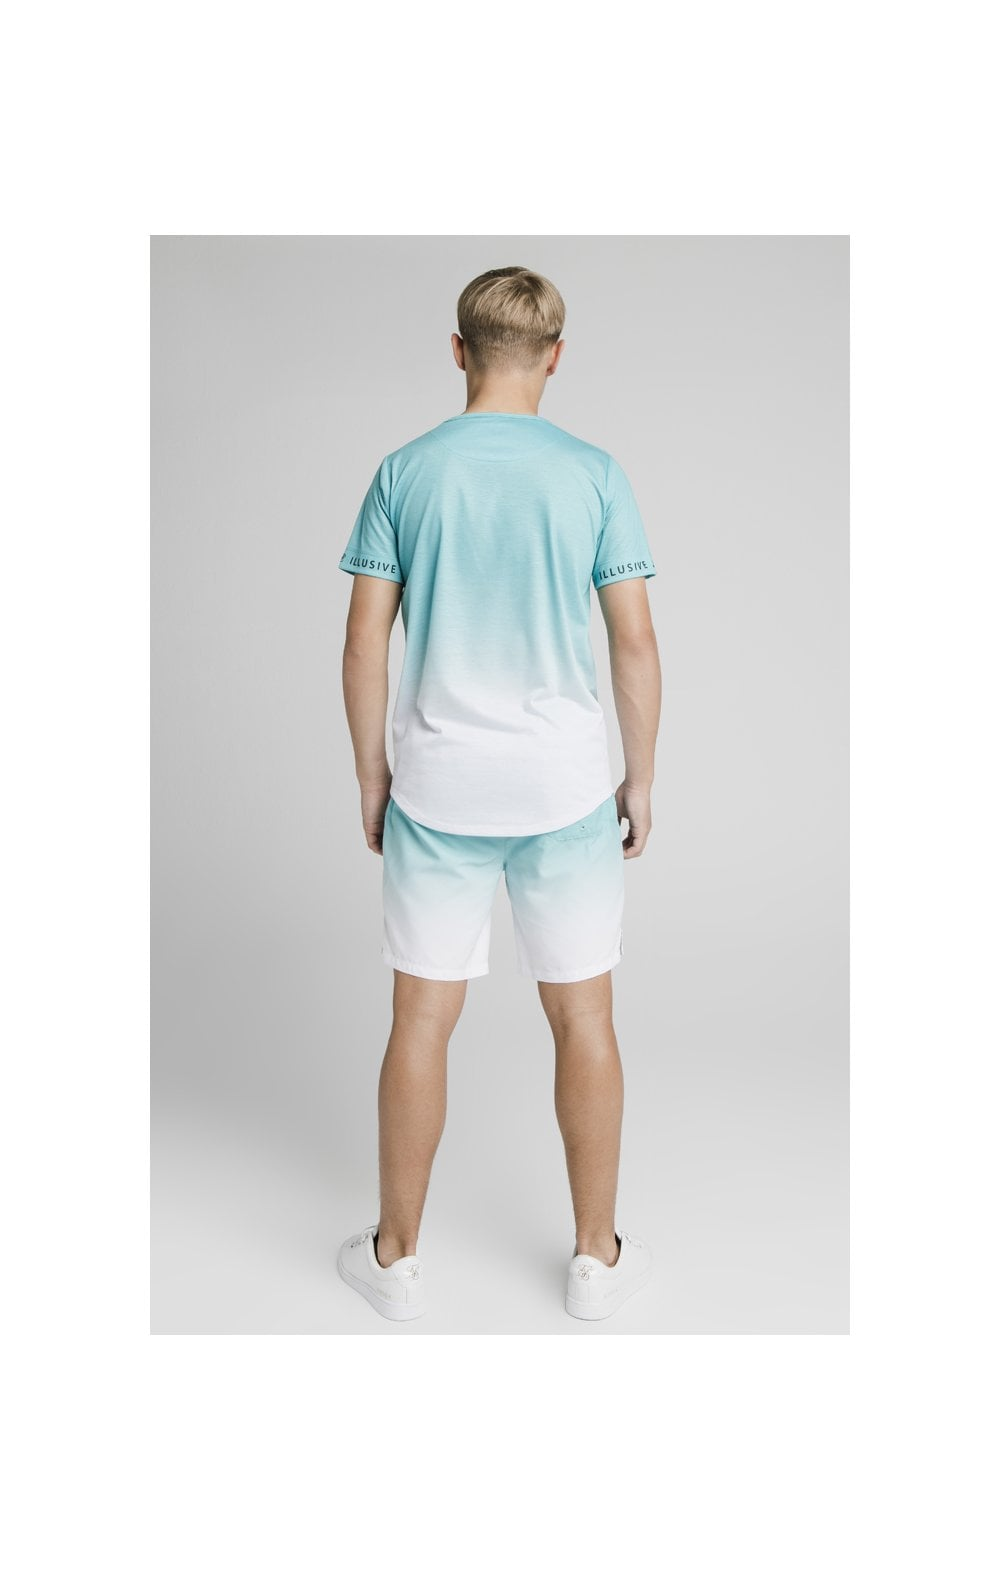 Illusive London Fade Swim Shorts - Teal & White (8)